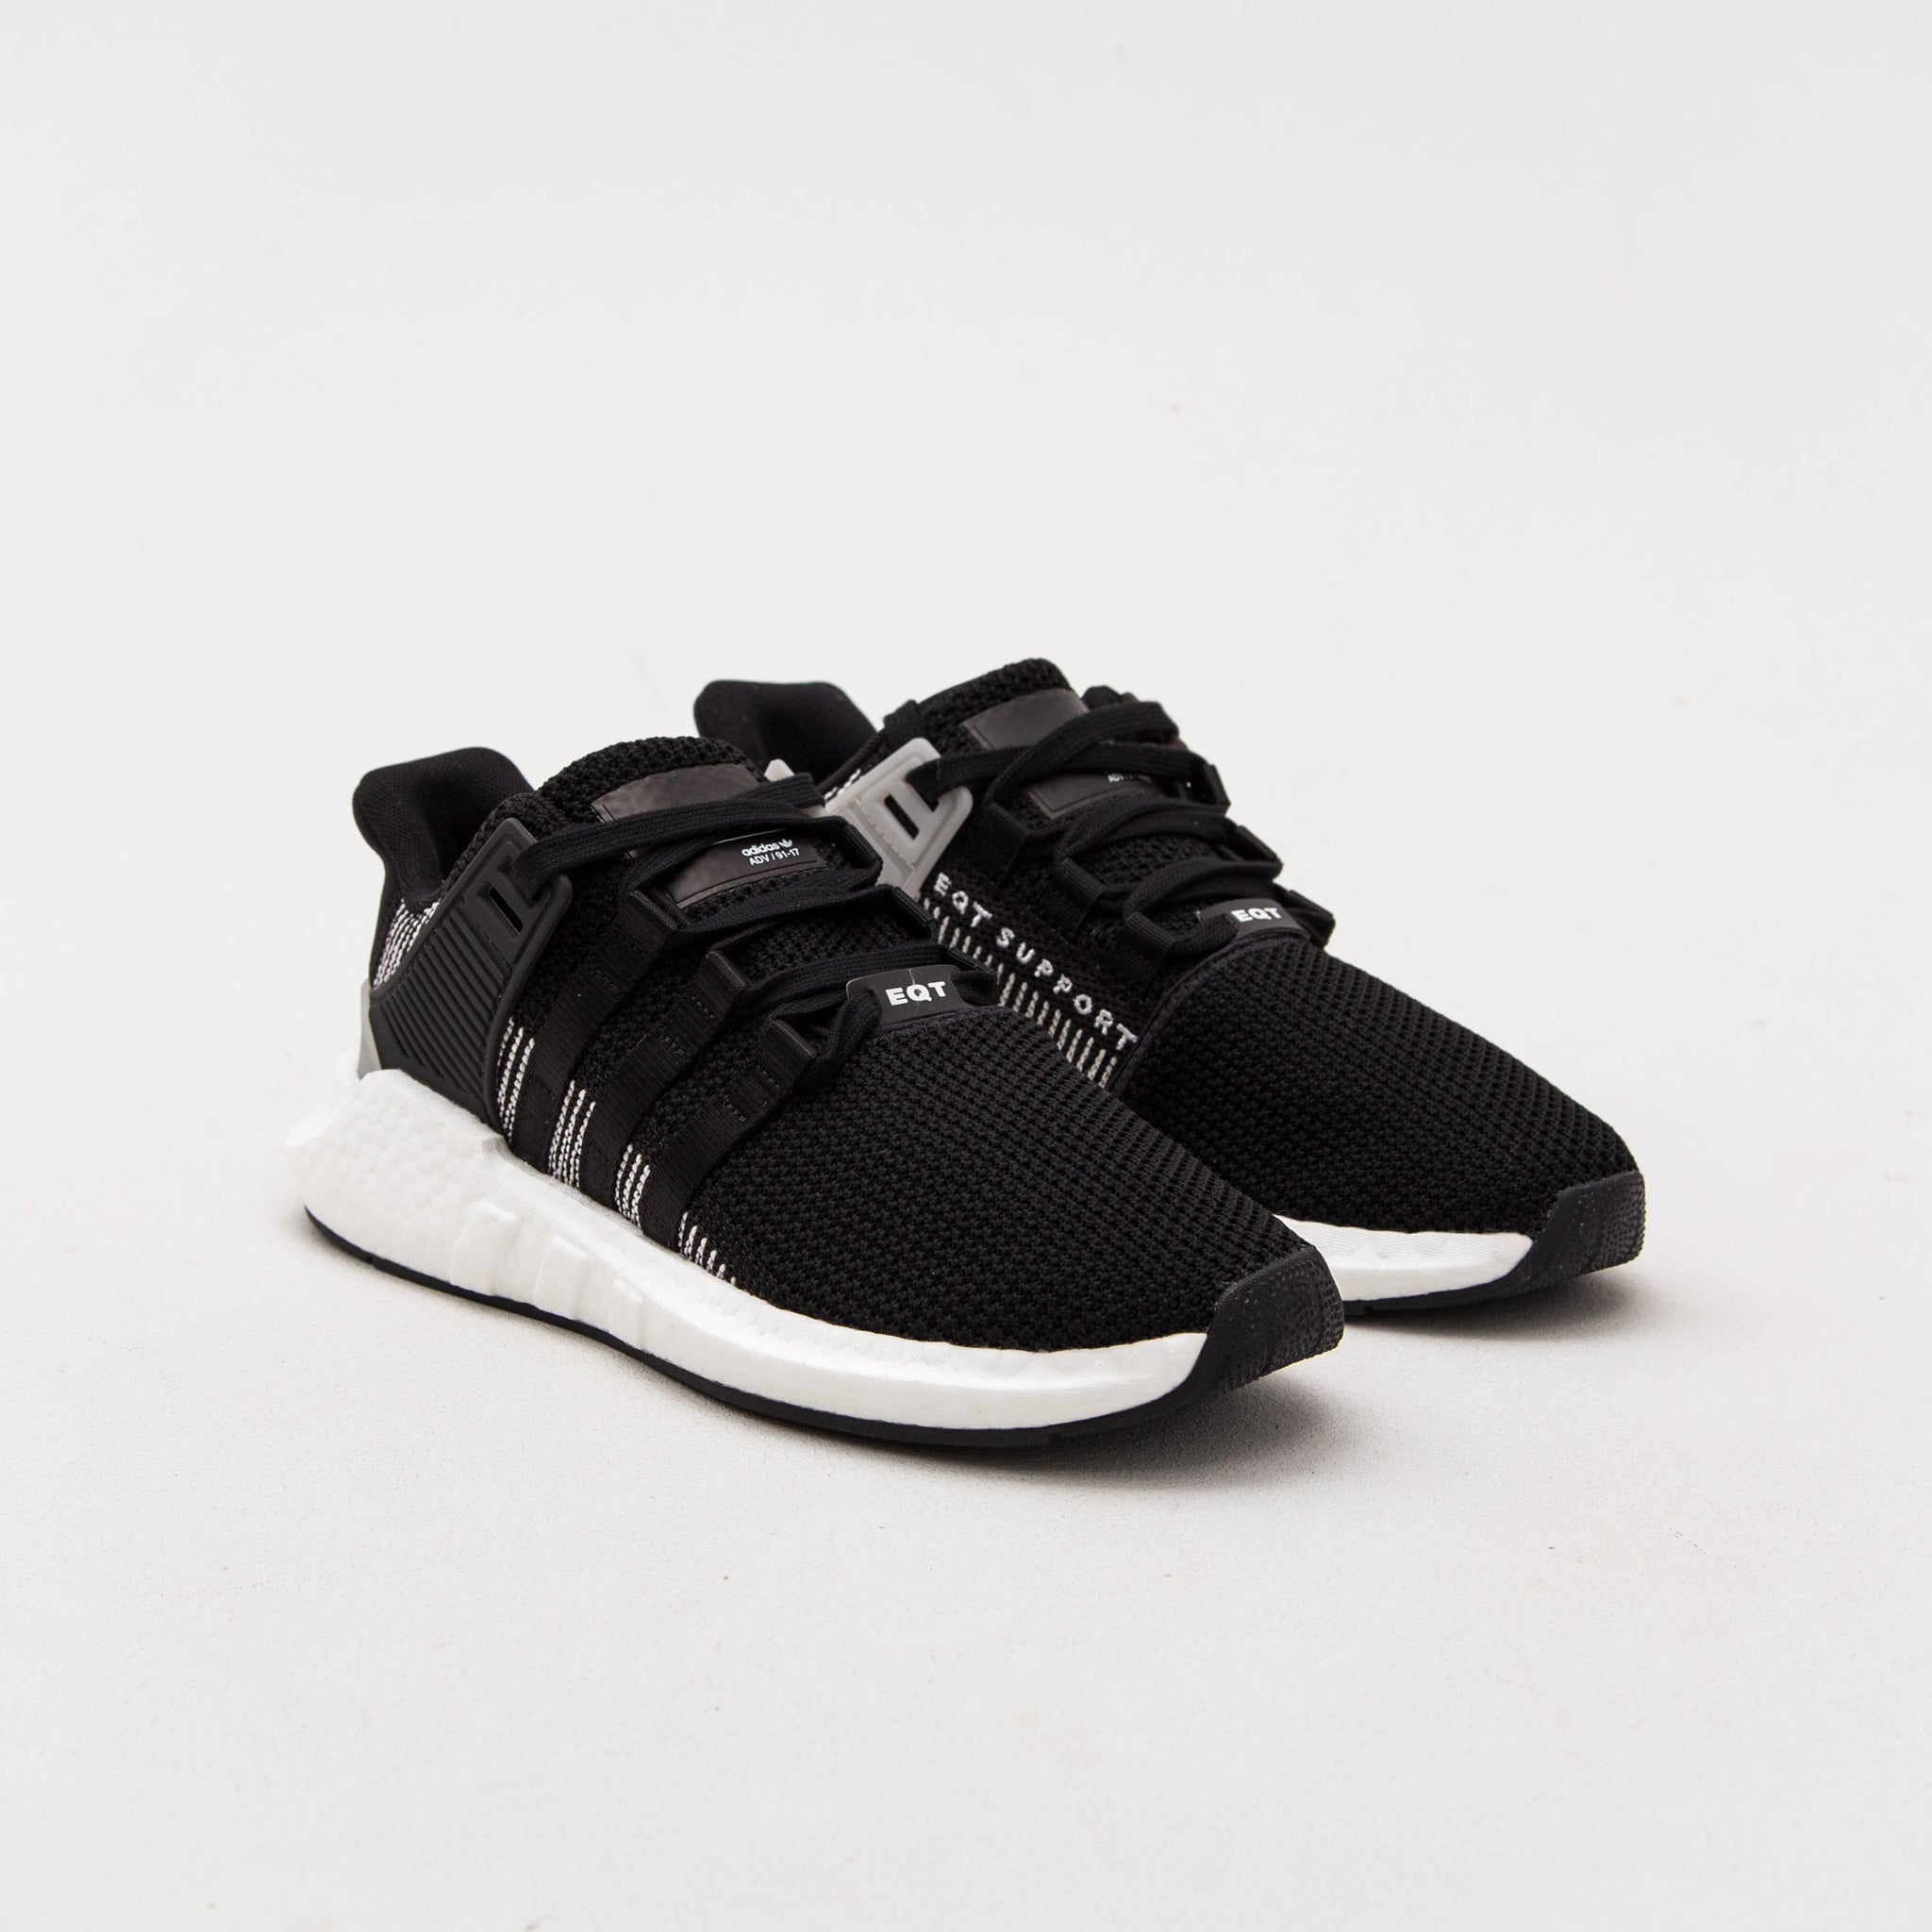 adidas EQT Support 93/17 Sneakers - Black BY9509 | AStore